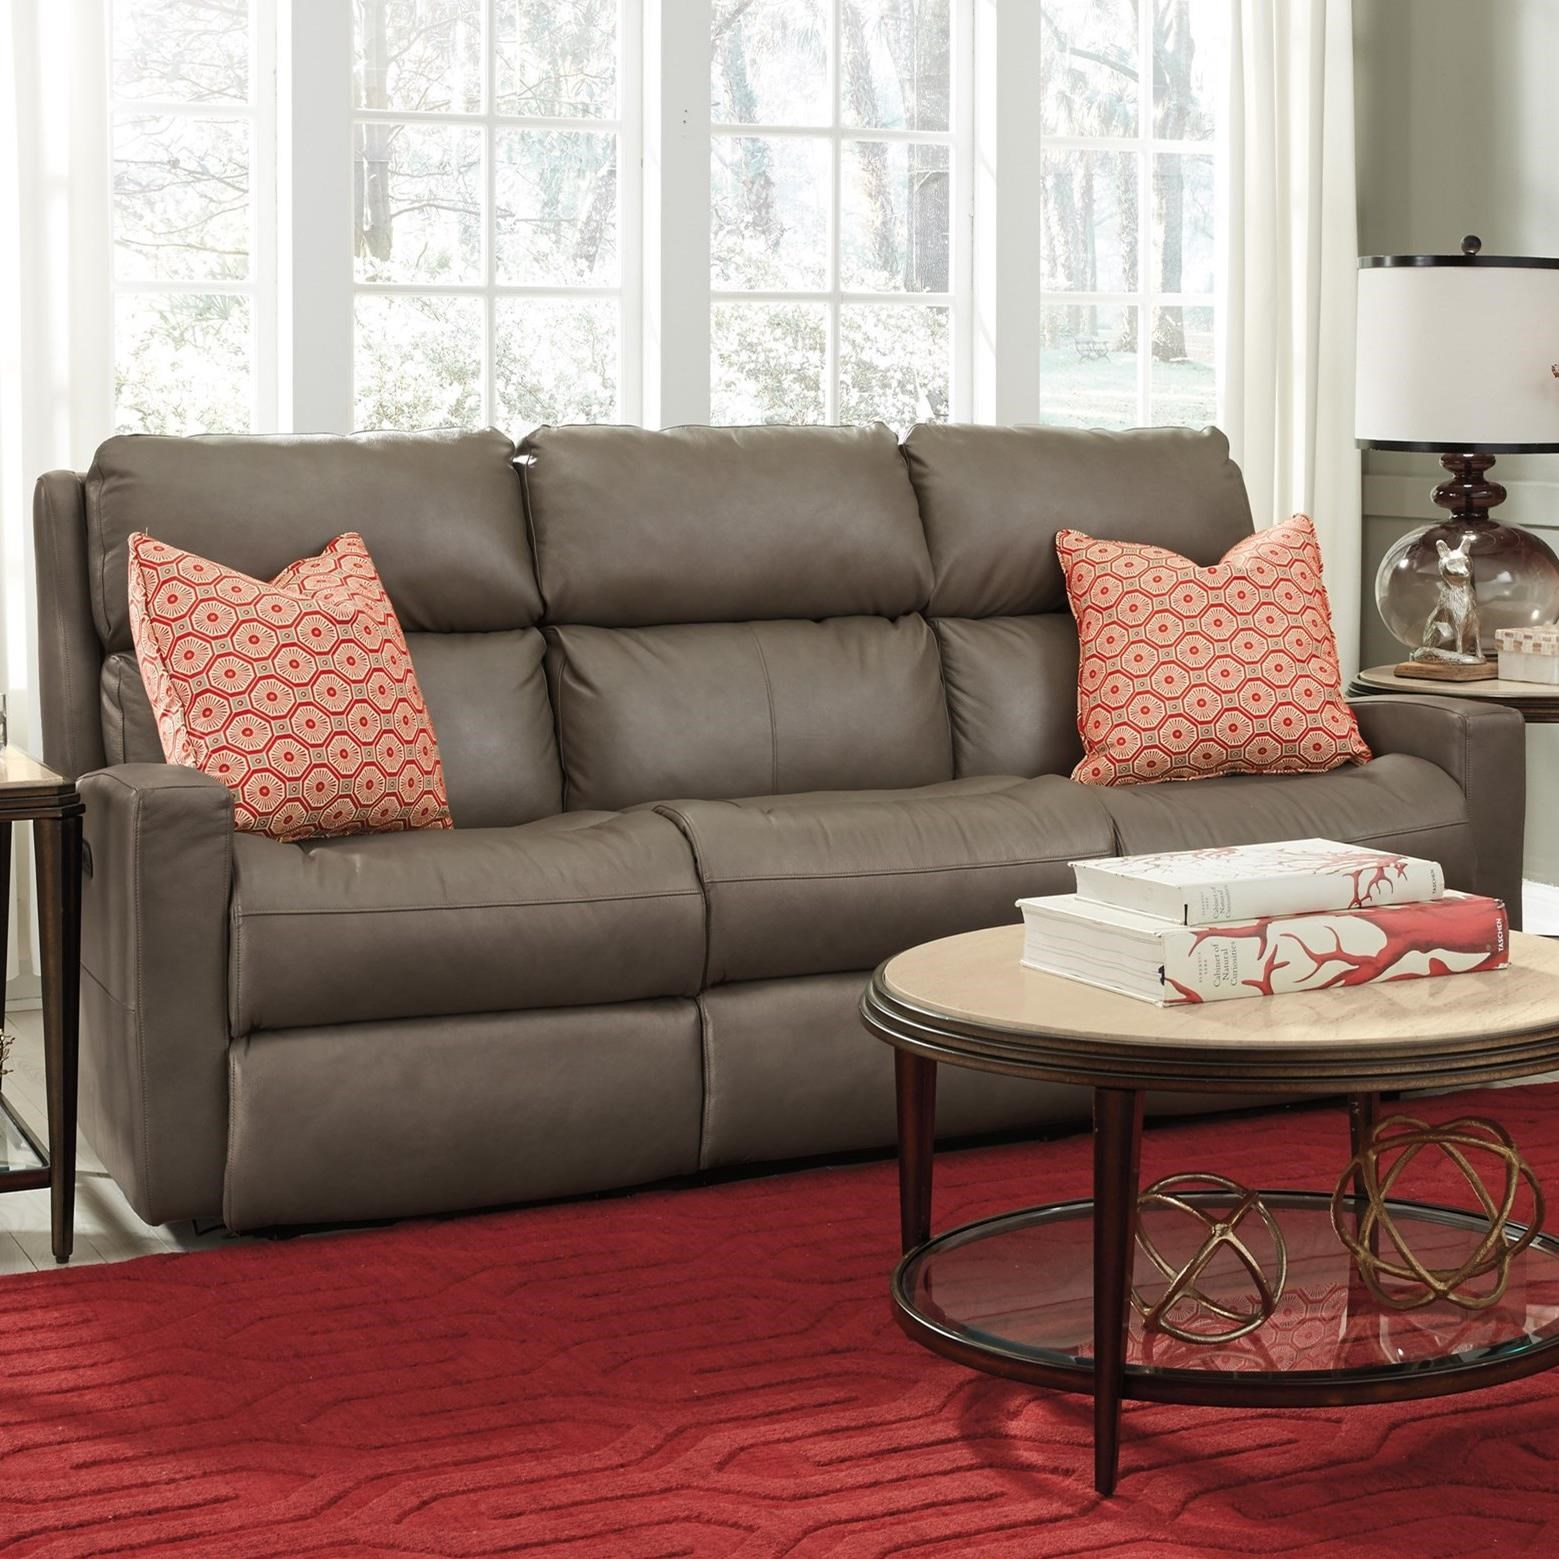 Catalina Power Reclining Sofa w/ Pwr Headrests by Flexsteel at Mueller Furniture